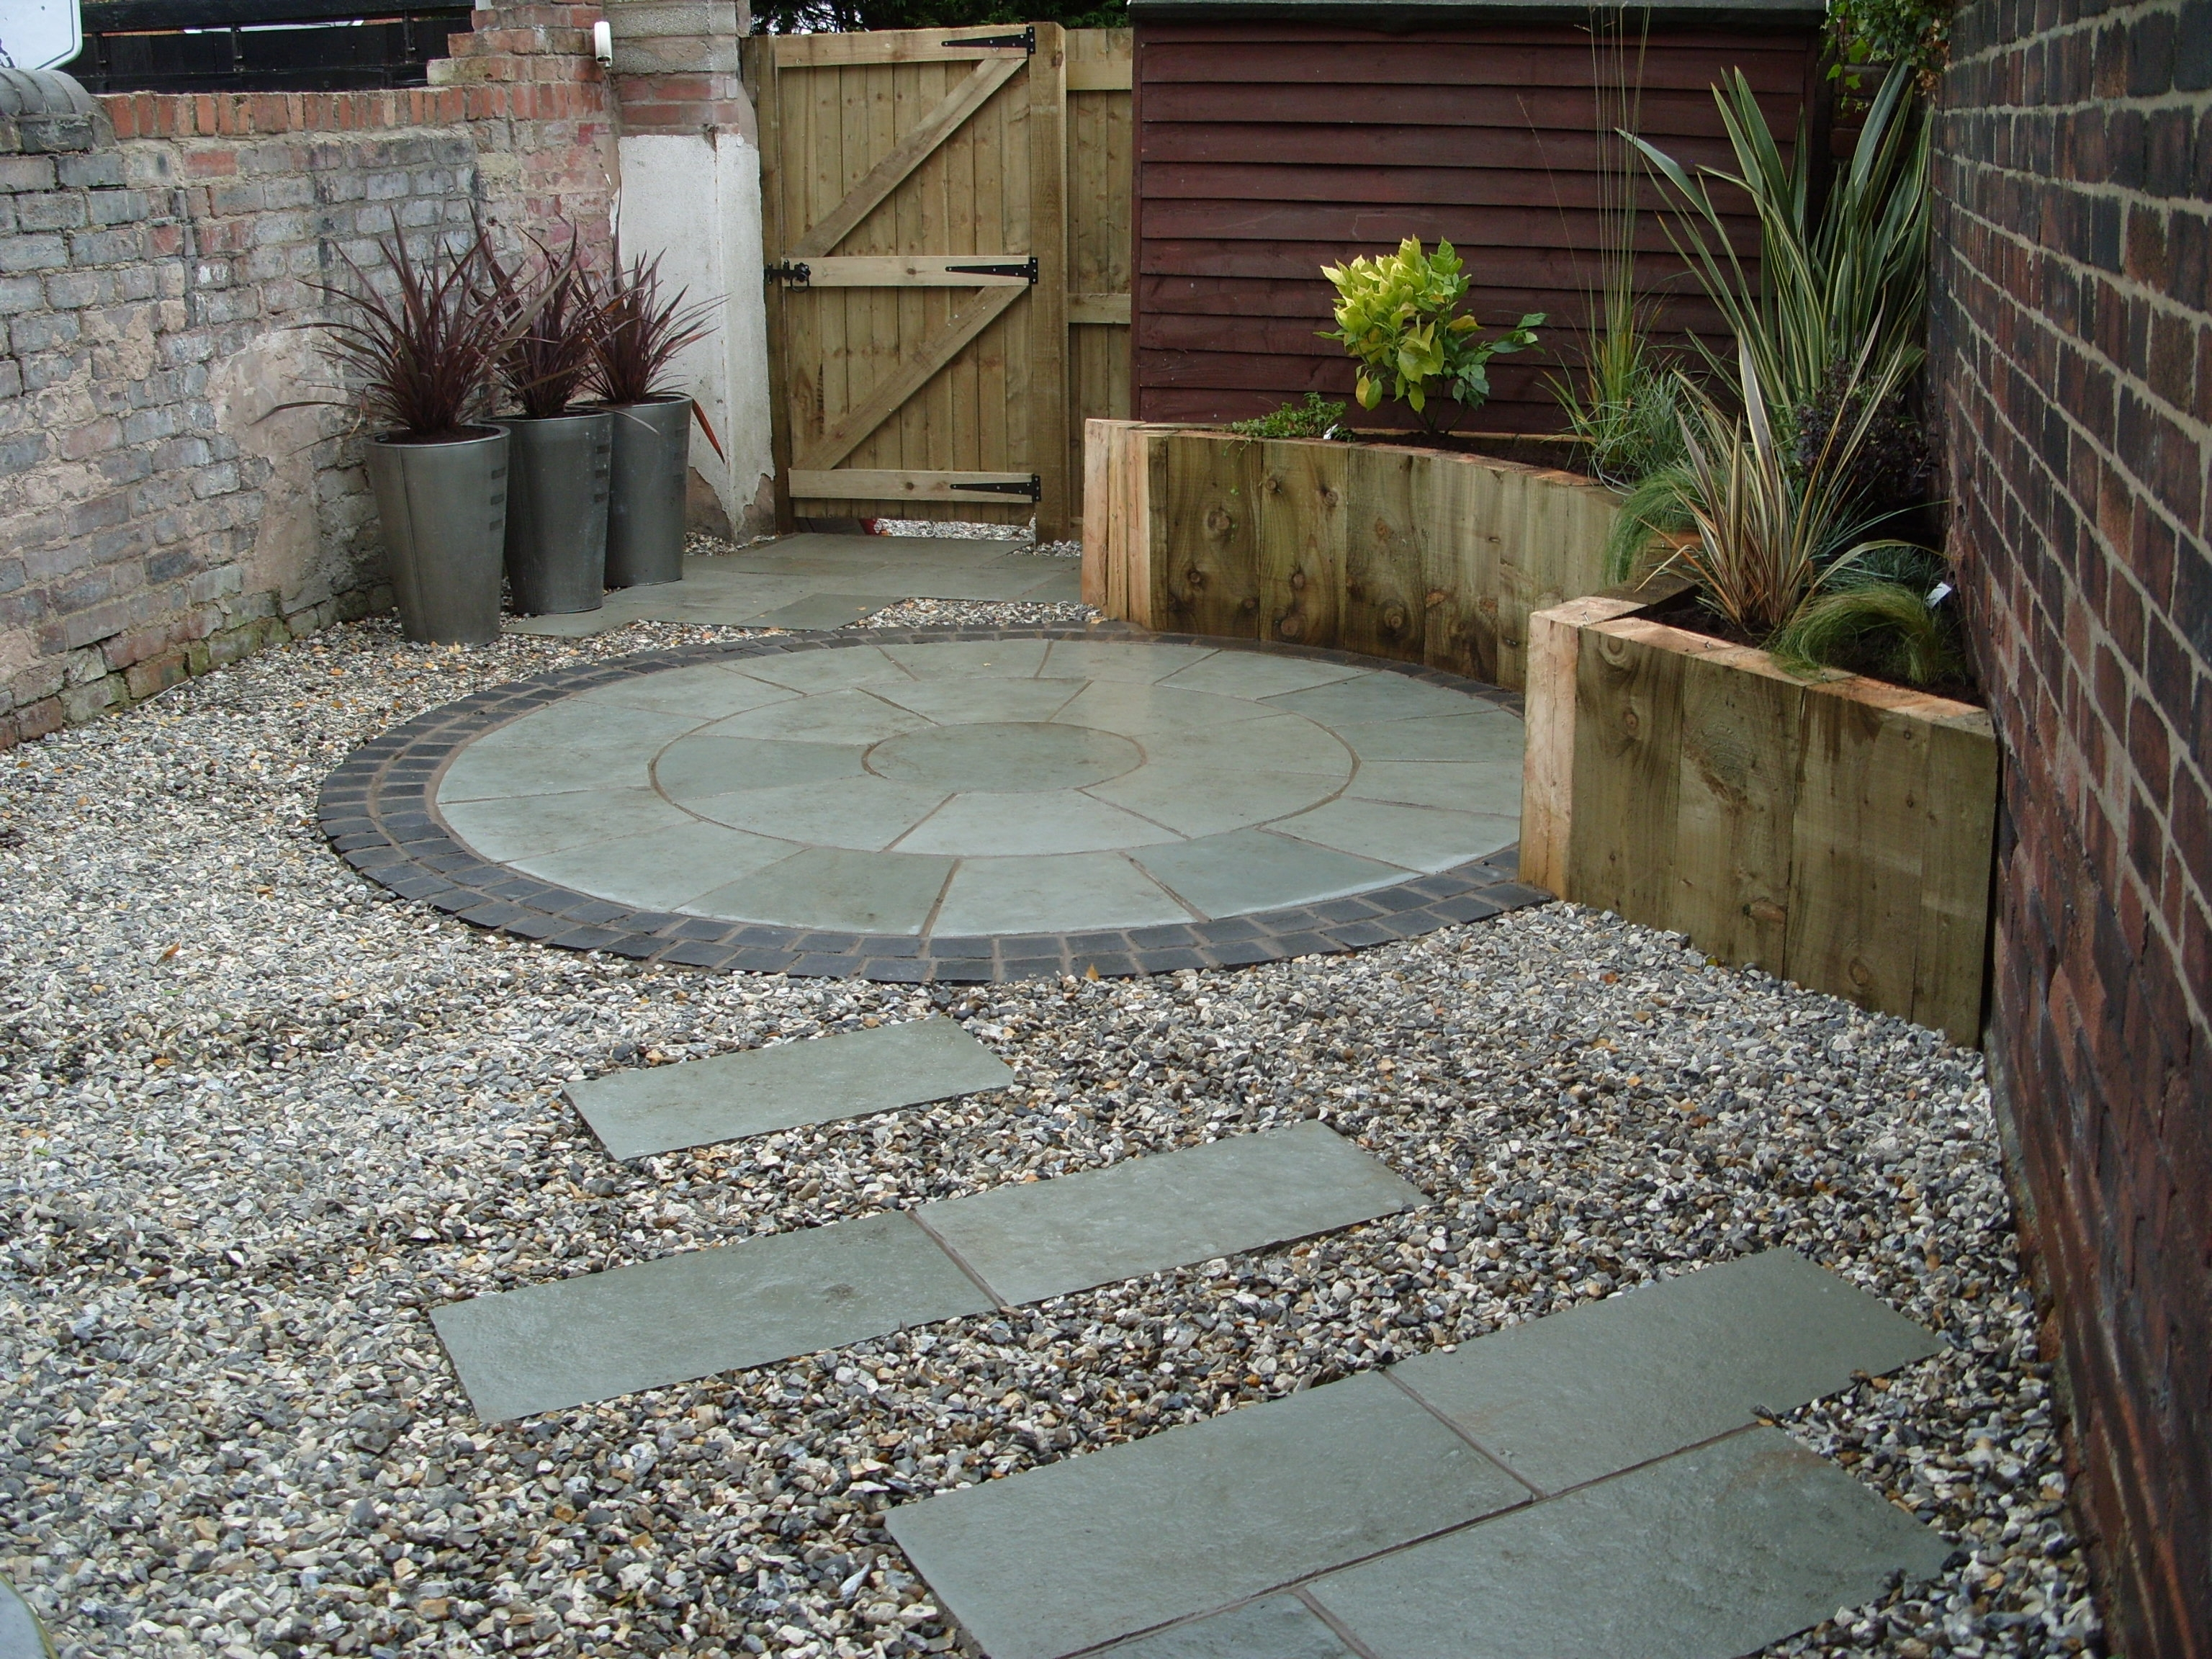 Paving ideas for small back gardens garden design for Garden designs pictures ideas